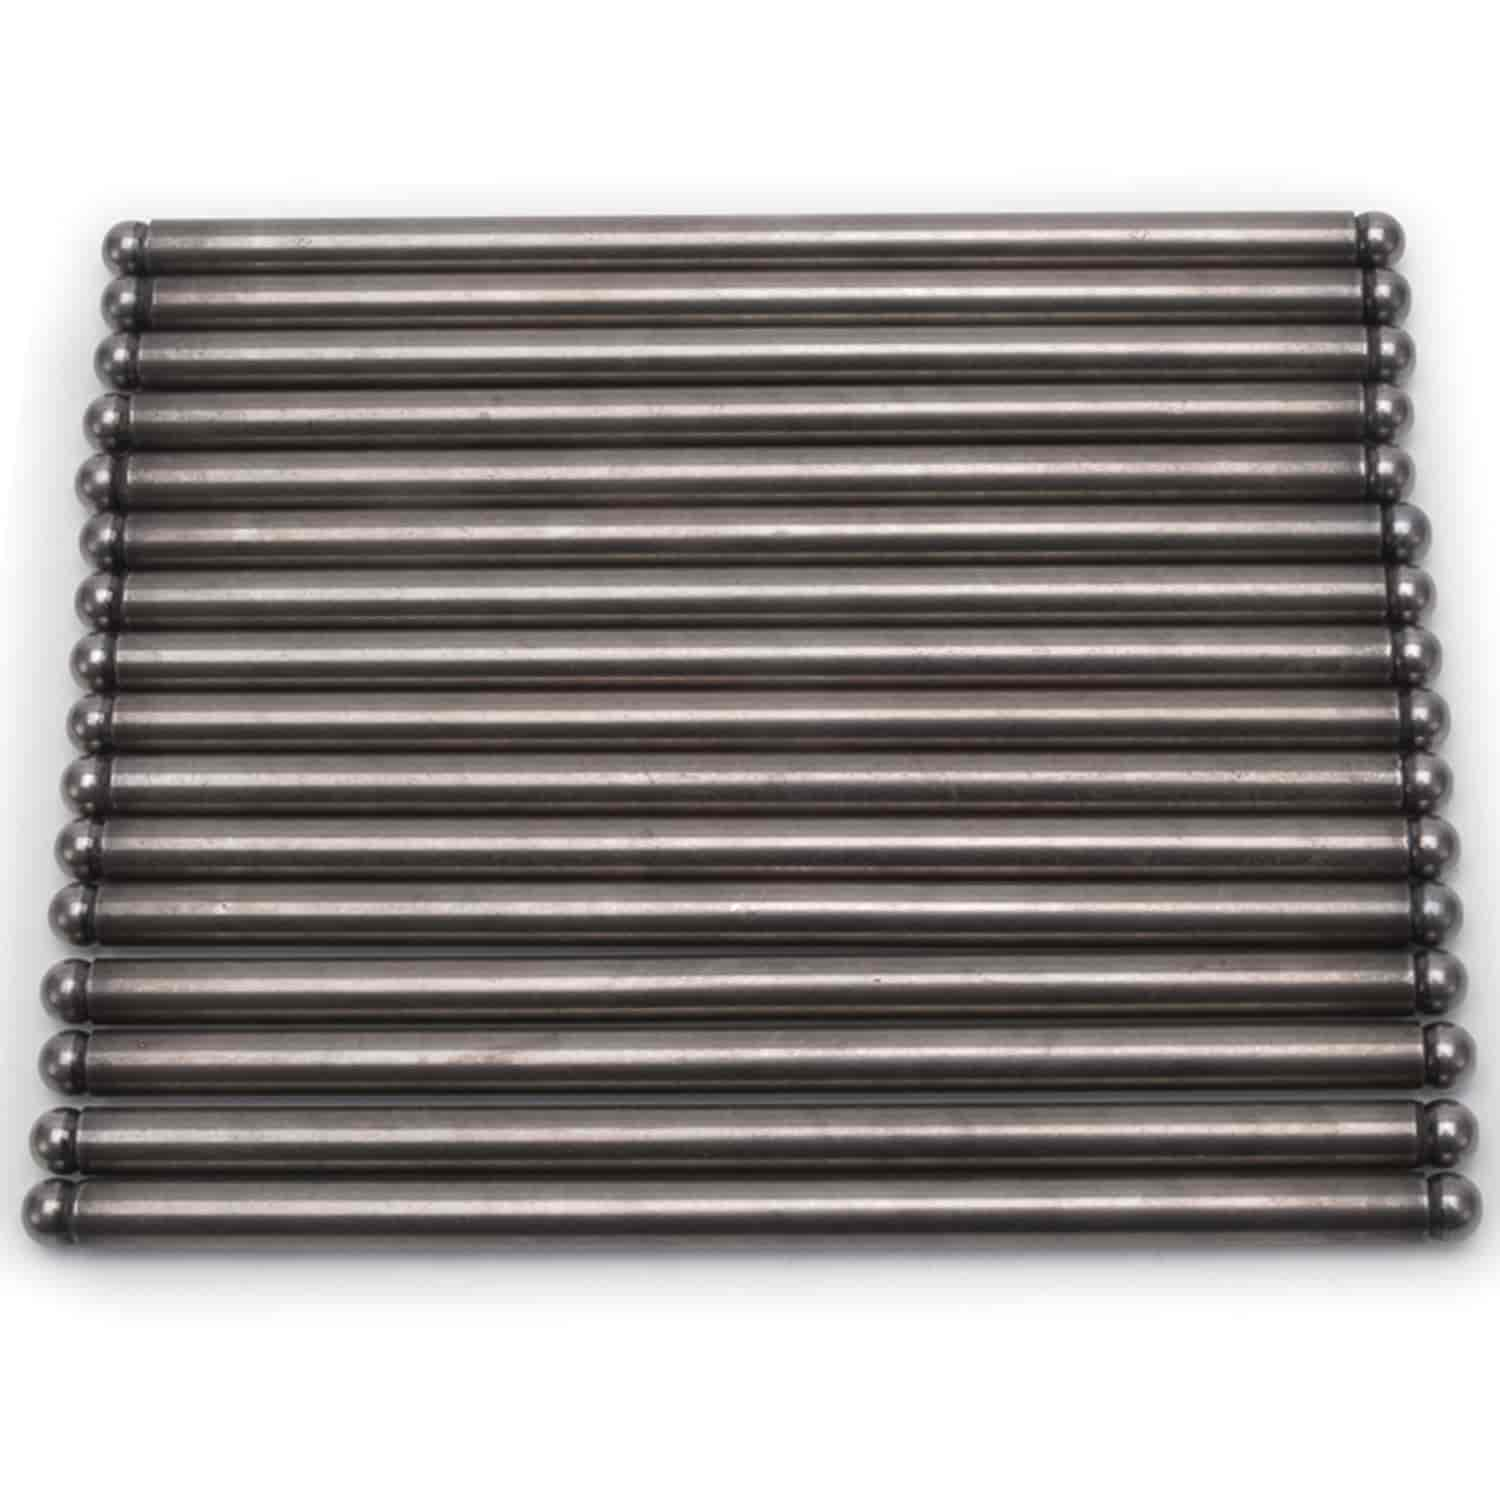 Edelbrock 9658 - Edelbrock Hardened Steel Pushrods